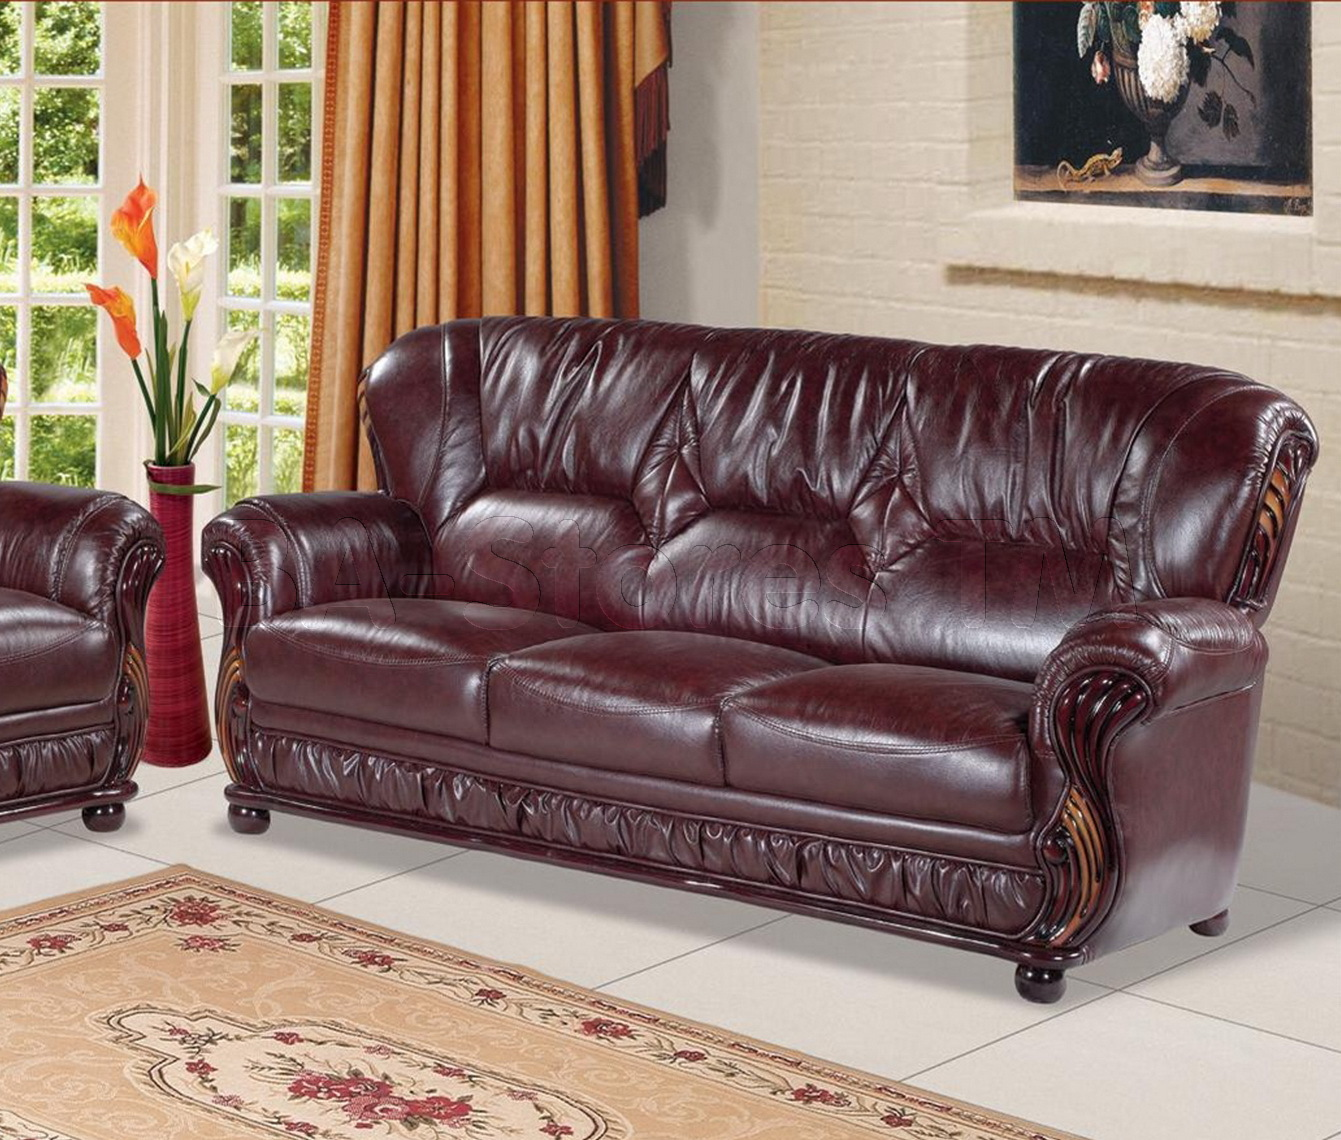 2017 Burgundy Leather Sofas Warm And Inviting Living Room Experience 22 2017 Burgundy Leather